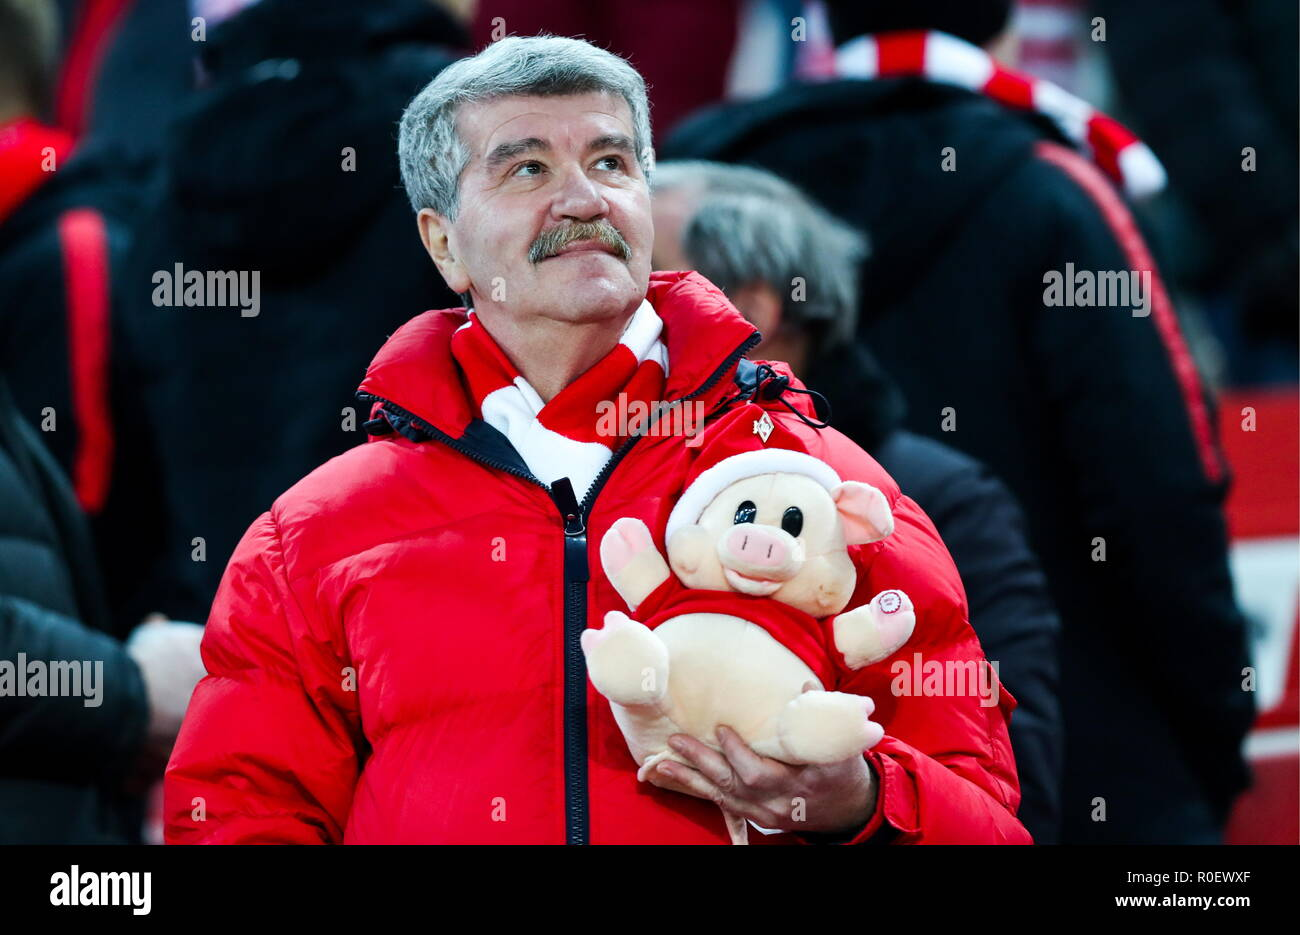 Moscow, Russia. 04th Nov, 2018. MOSCOW, RUSSIA - NOVEMBER 4, 2018: A supporter of Spartak Moscow with a soft toy during a 2018/2019 Russian Football Premiere League Round 13 football match between Spartak Moscow and Ural Yekaterinburg at Otrkytiye Arena. Sergei Savostyanov/TASS Credit: ITAR-TASS News Agency/Alamy Live News - Stock Image